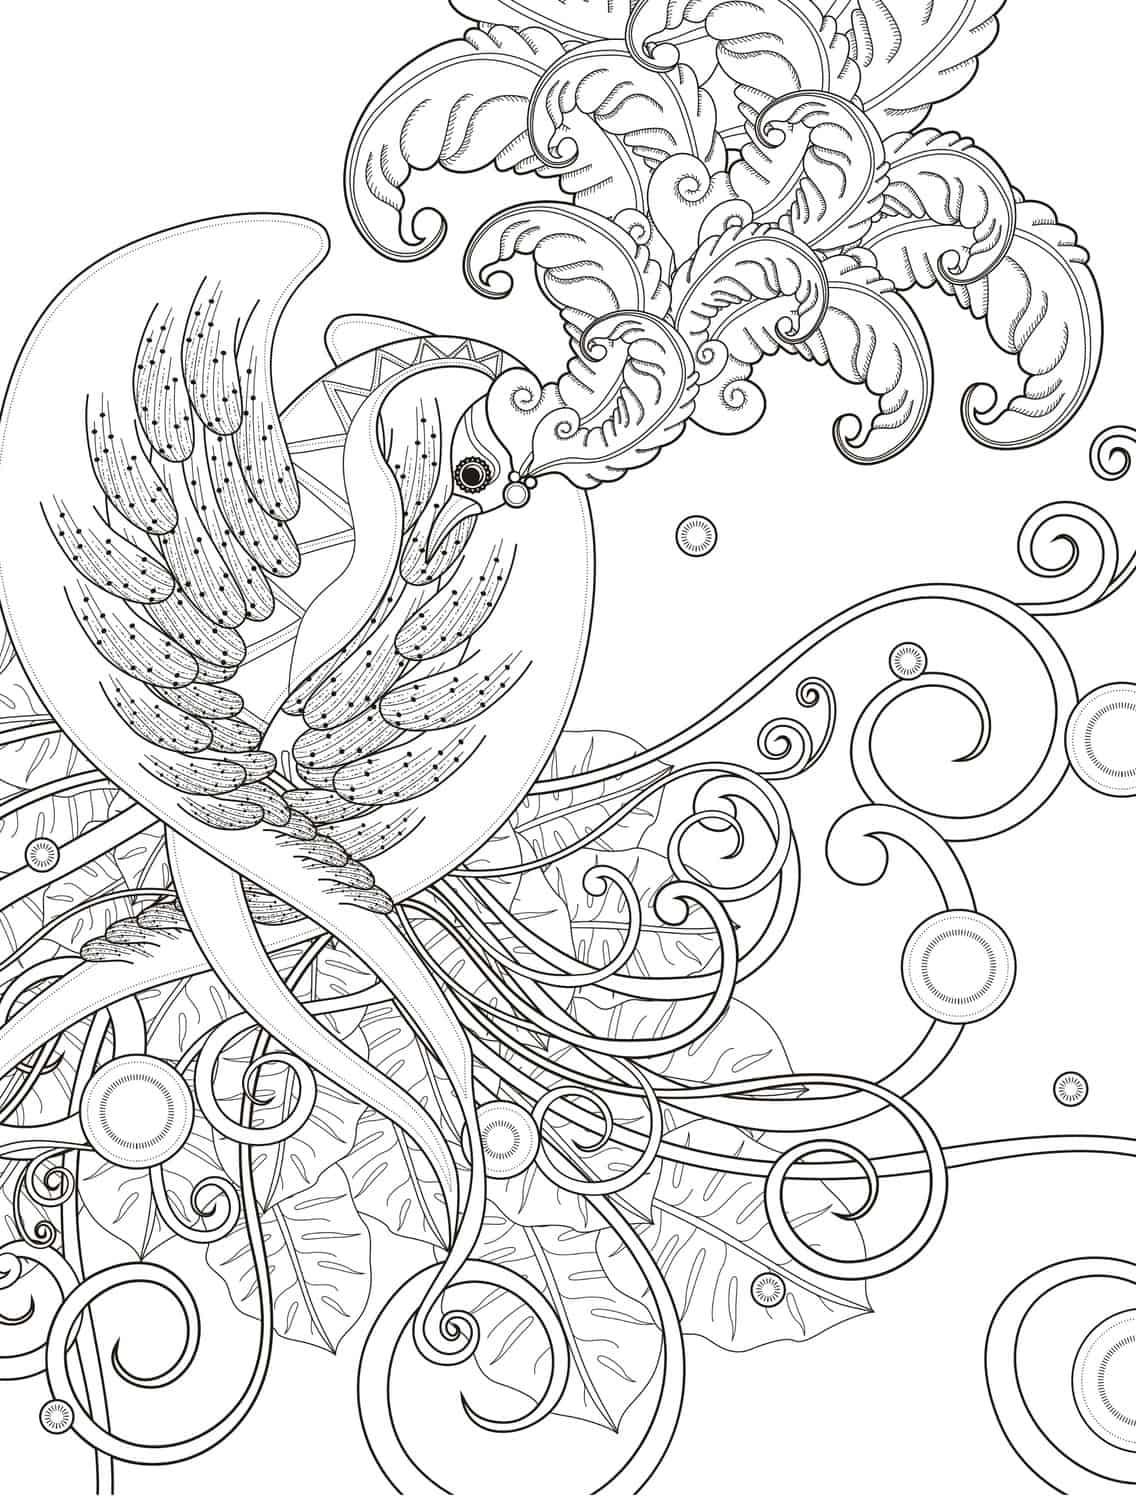 20 Gorgeous Free Printable Adult Coloring Pages Page 15 Of 22